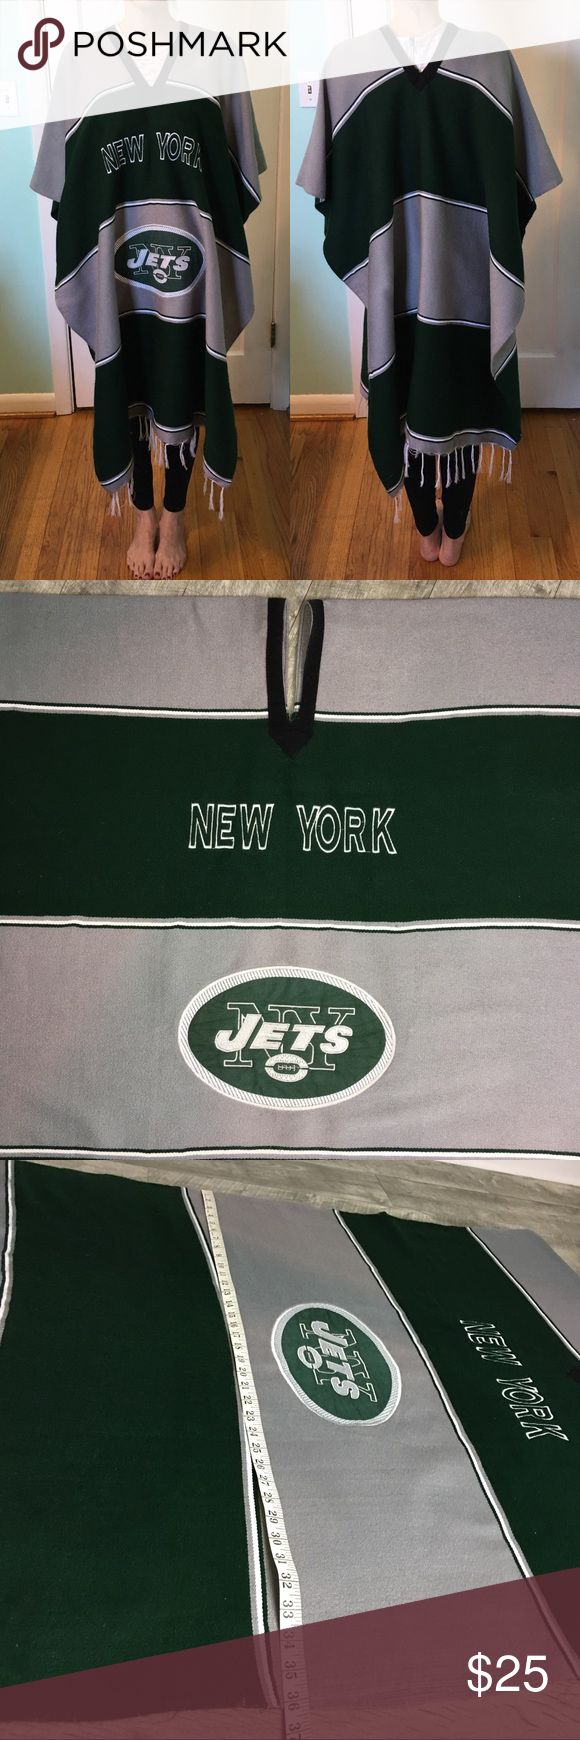 New York Jets Poncho Serape Pullover. New York Jets Poncho Serape Pullover. ***Gray area of poncho on front and back is either faded or stained. It appears that this was hanging on a hanger or dress form near a window. ***  Fading hard to see when draped on the body. Last photo best shows fading. Also, the embroidered white border on the Jets logo has a few loose threads. Please see photos. No tag. Other